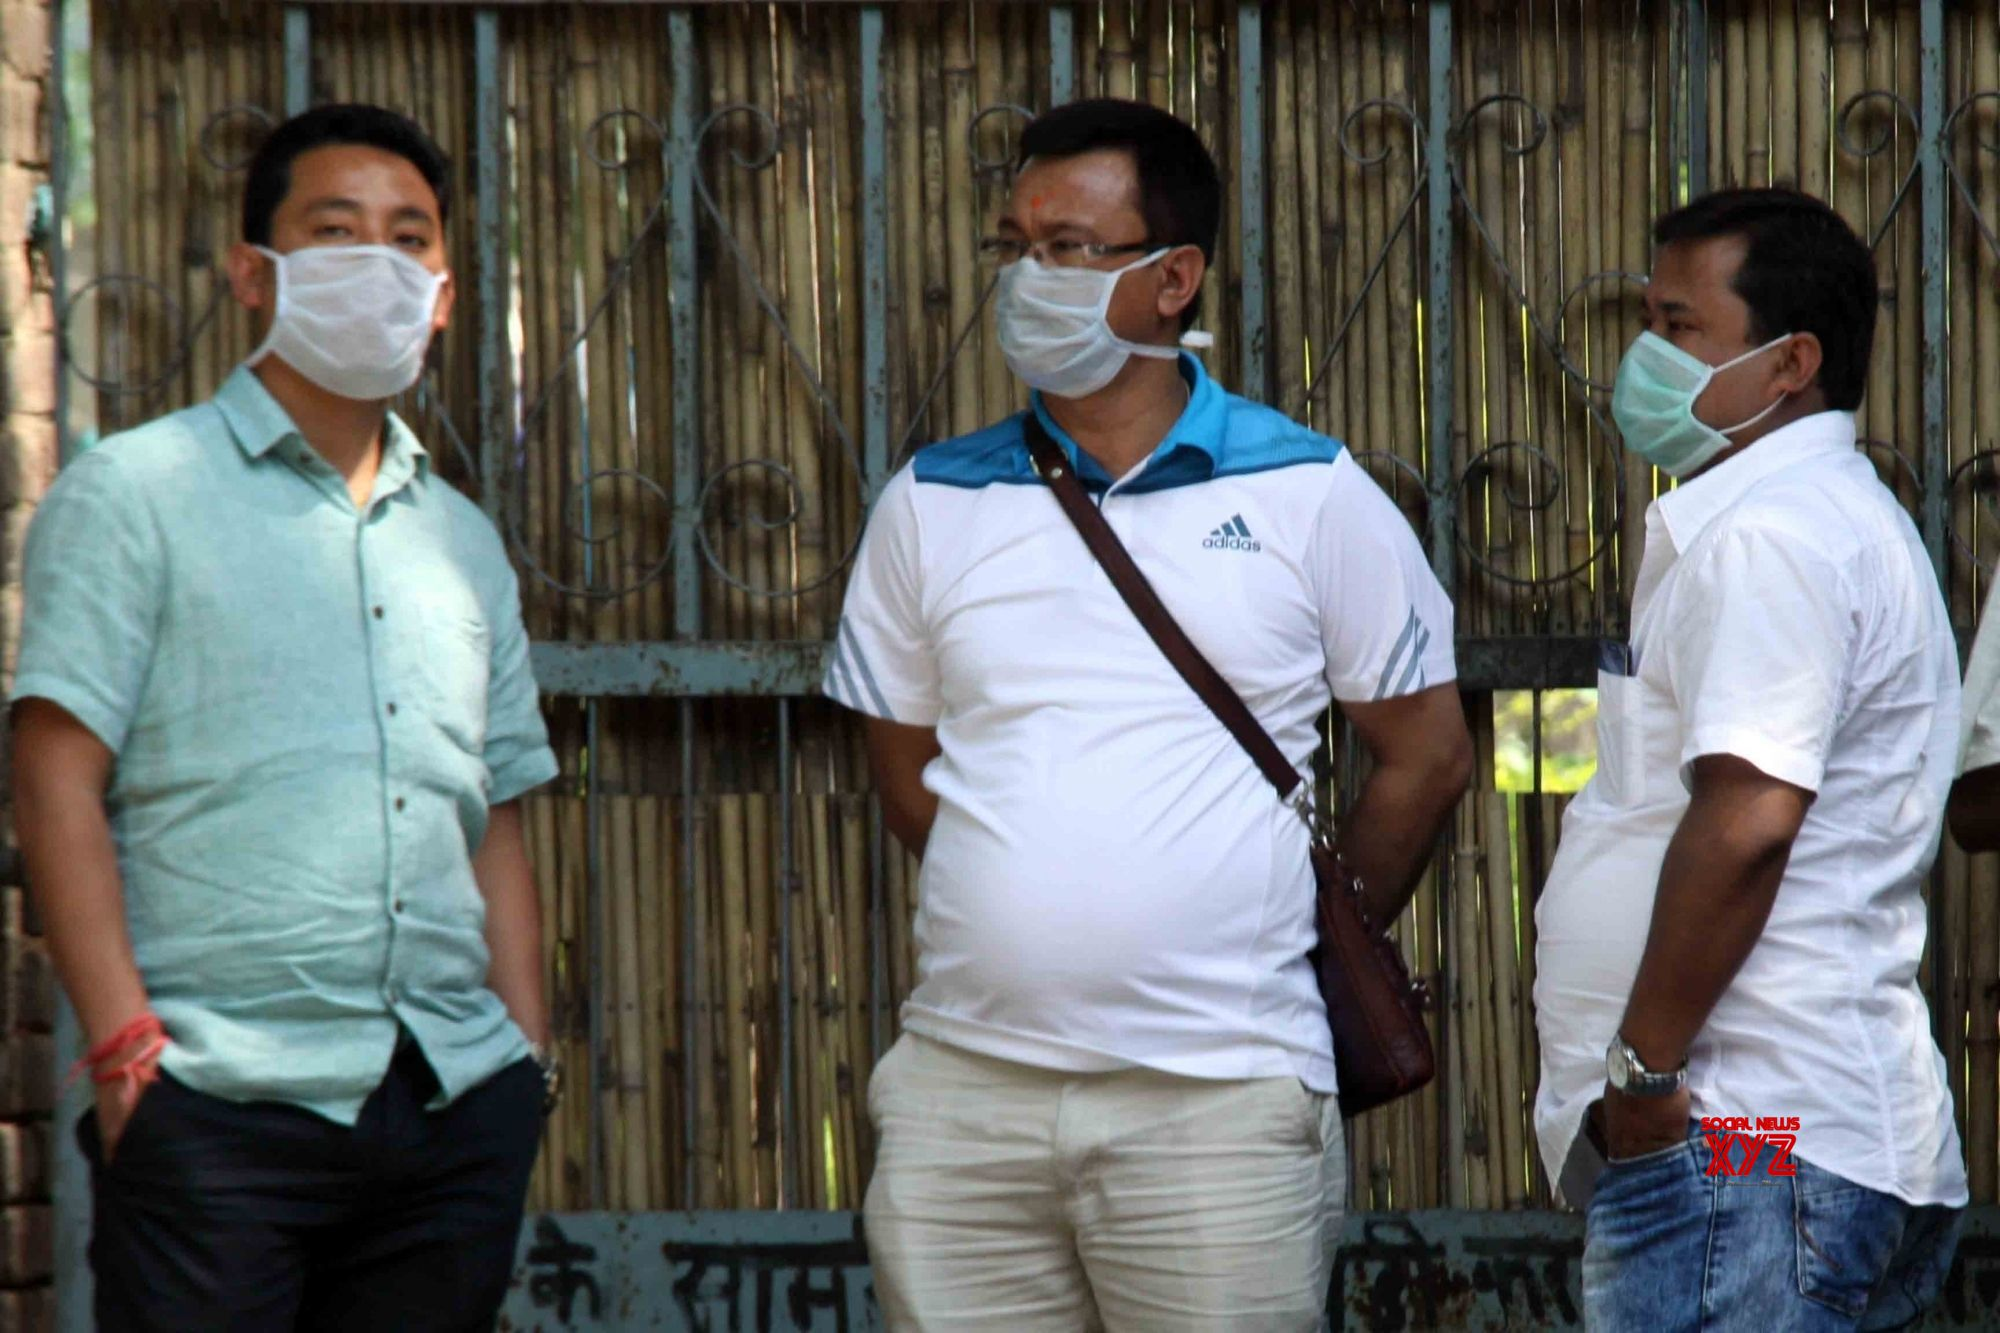 Swine flu claims 5 more lives in Rajasthan, toll 105